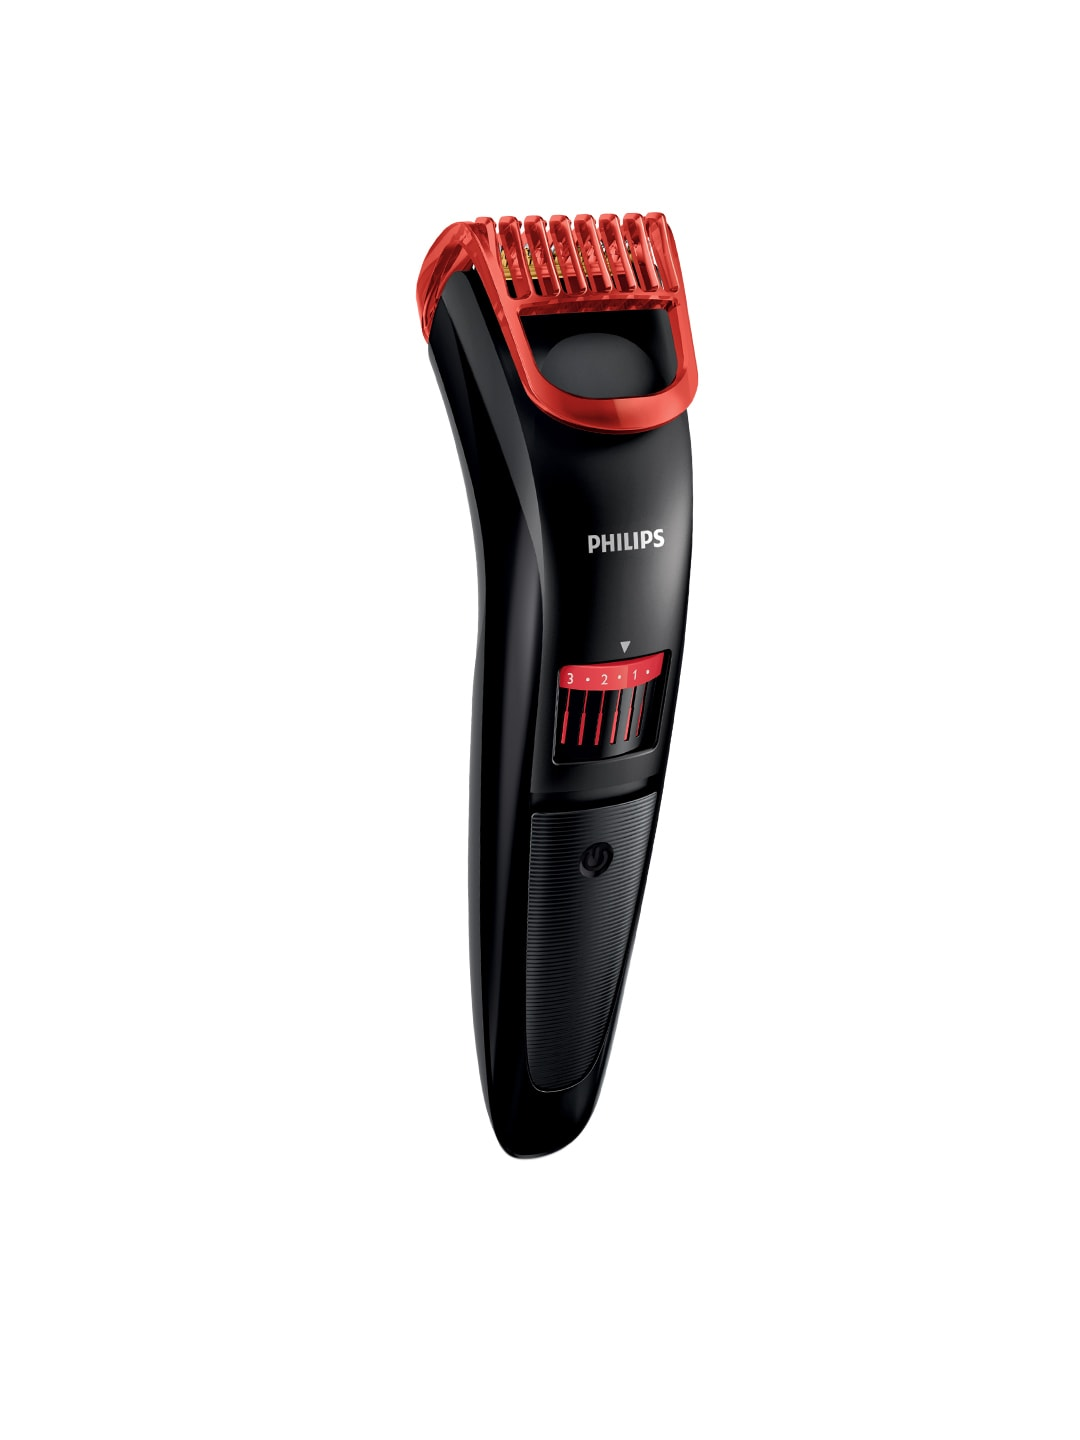 Philips 3000 9 In 1 Multi Grooming Kit For Beard Hair Body With Nose Trimmer Attachment Mg3747 13